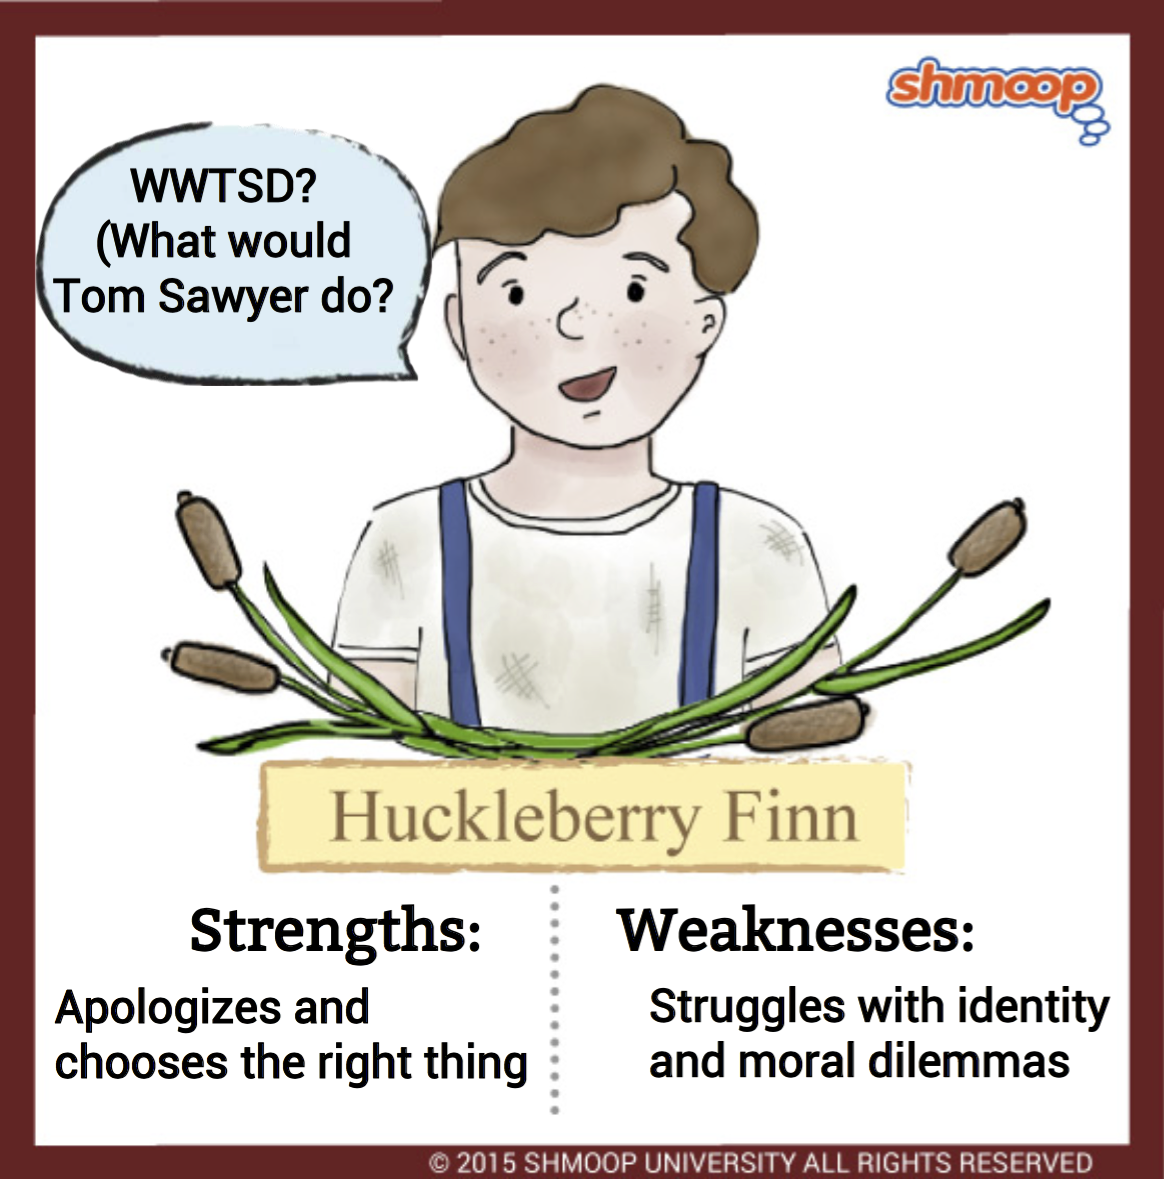 the adventures of huckleberry finn racism essay This free english literature essay on the adventures of huckleberry finn - mark twain is perfect for english literature students to use as an example.